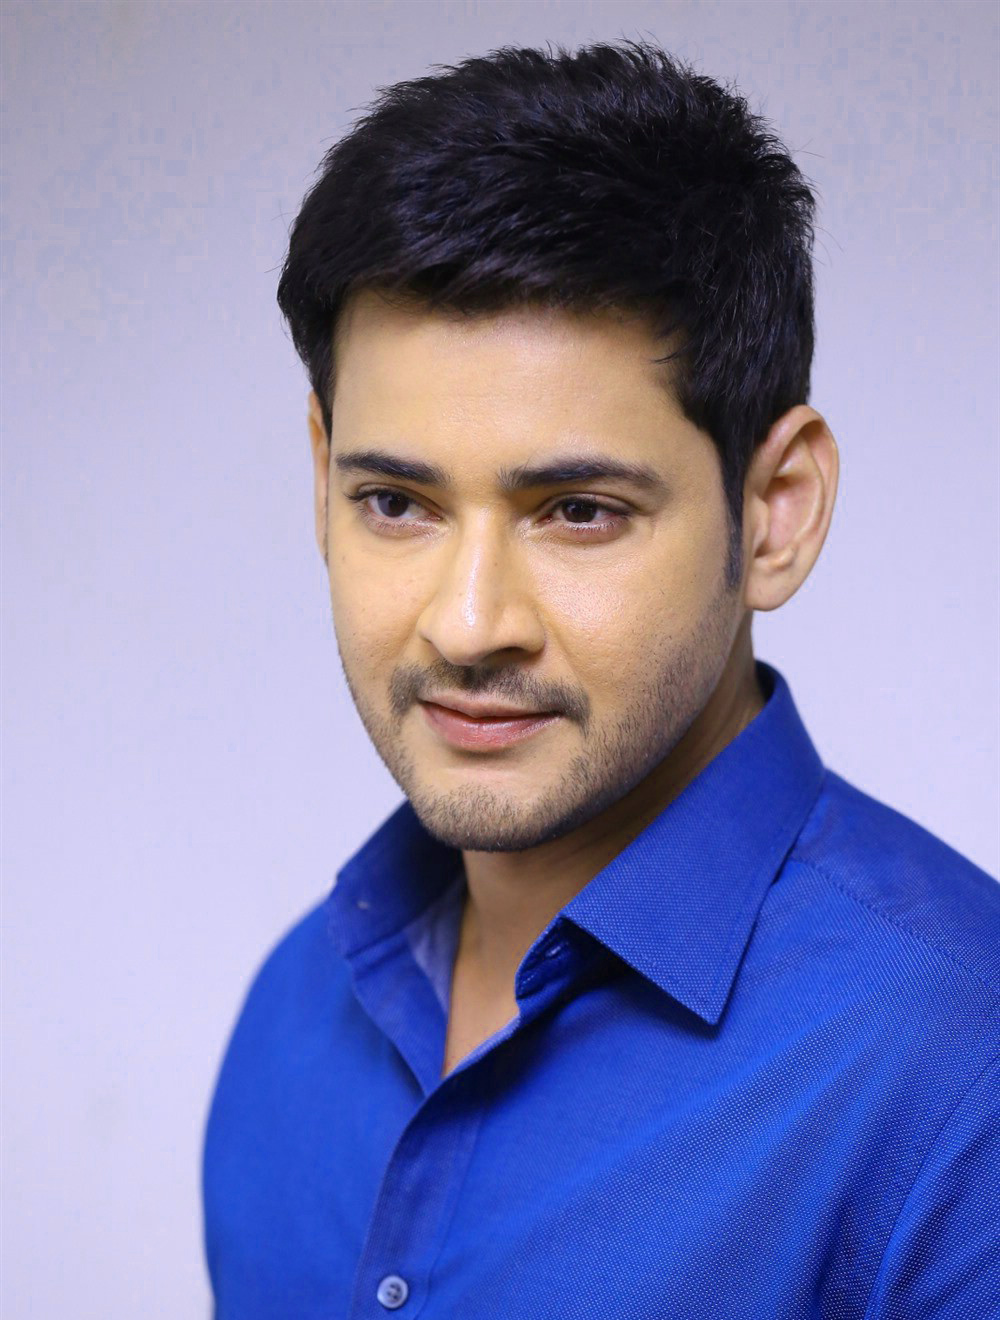 Mahesh Babu Images Photo for Whatsapp